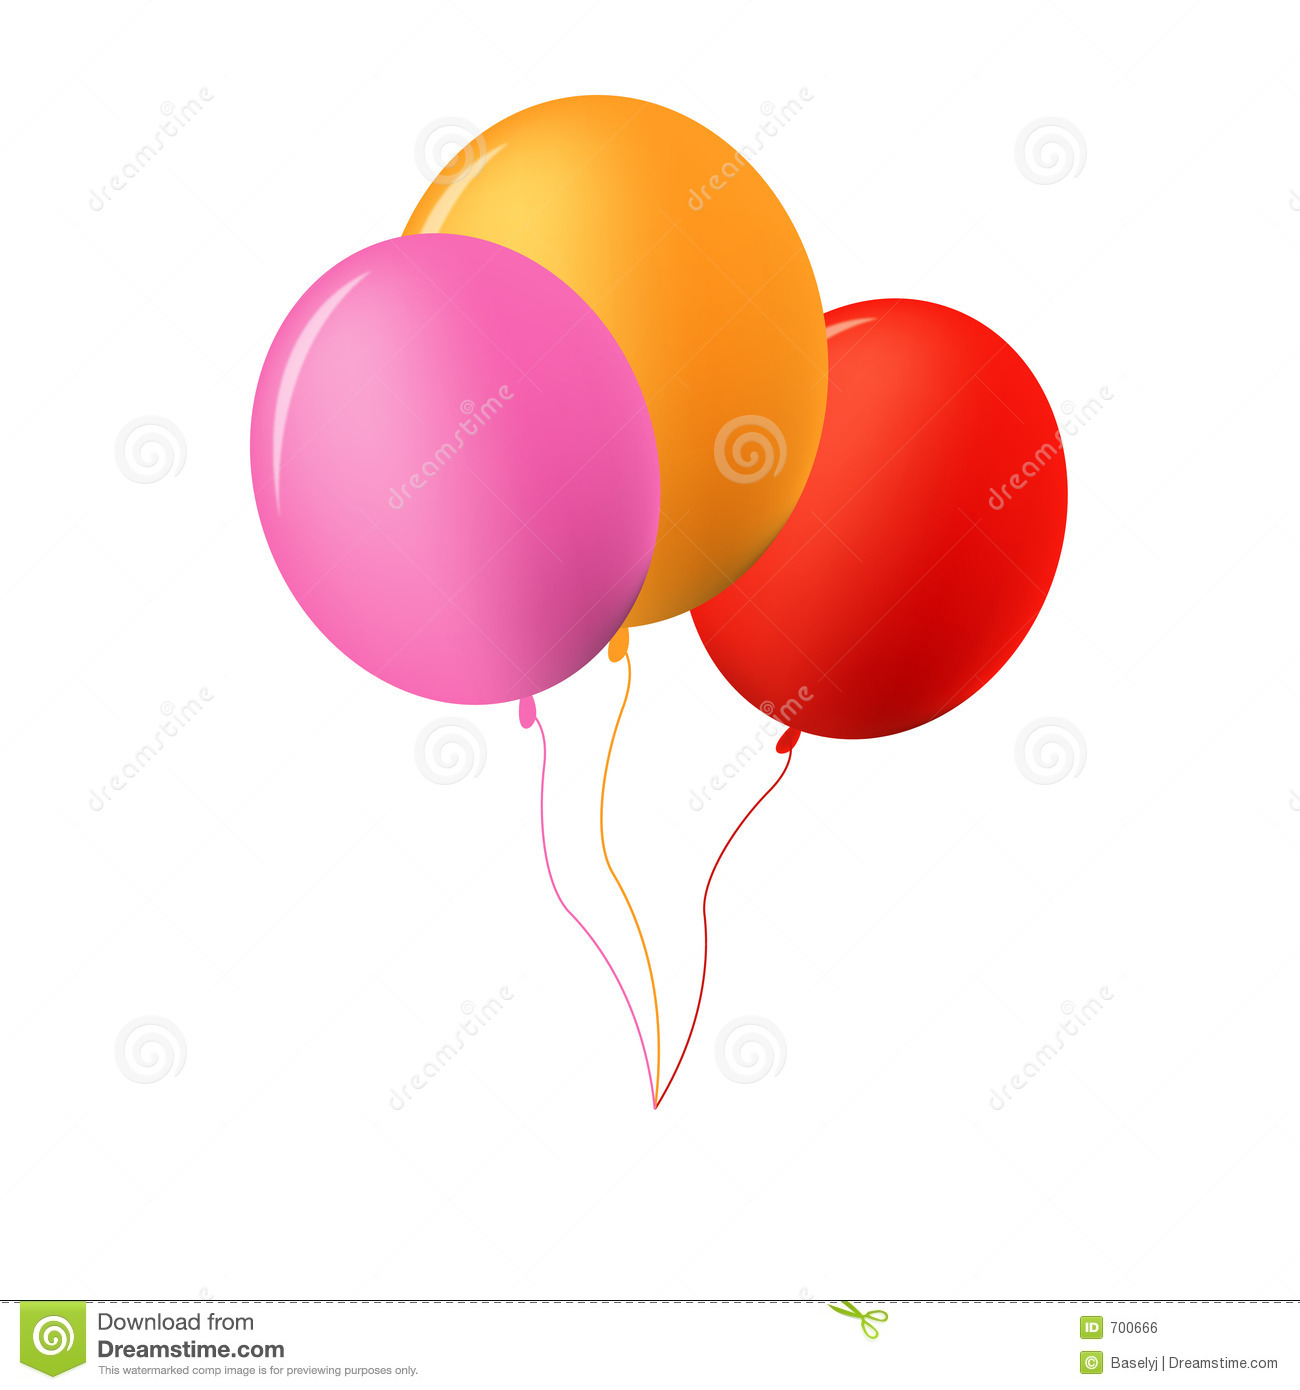 Baloons Royalty Free Stock Image - Image: 700666